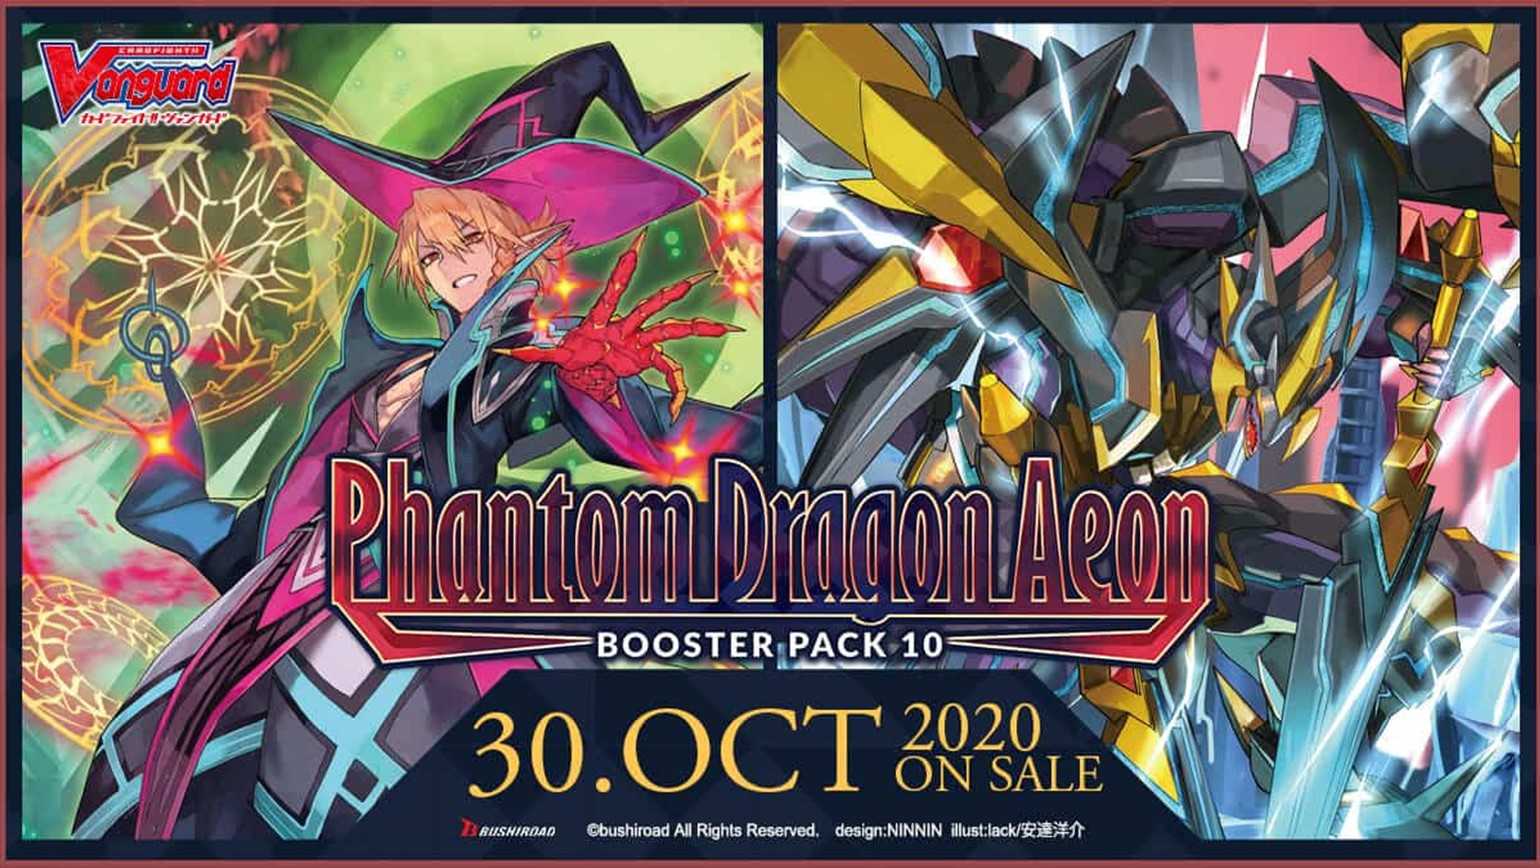 New English Edition Cardfight!! Vanguard Booster Pack Vol. 10: Phantom Dragon Aeon is Coming to Stores on October 30th!